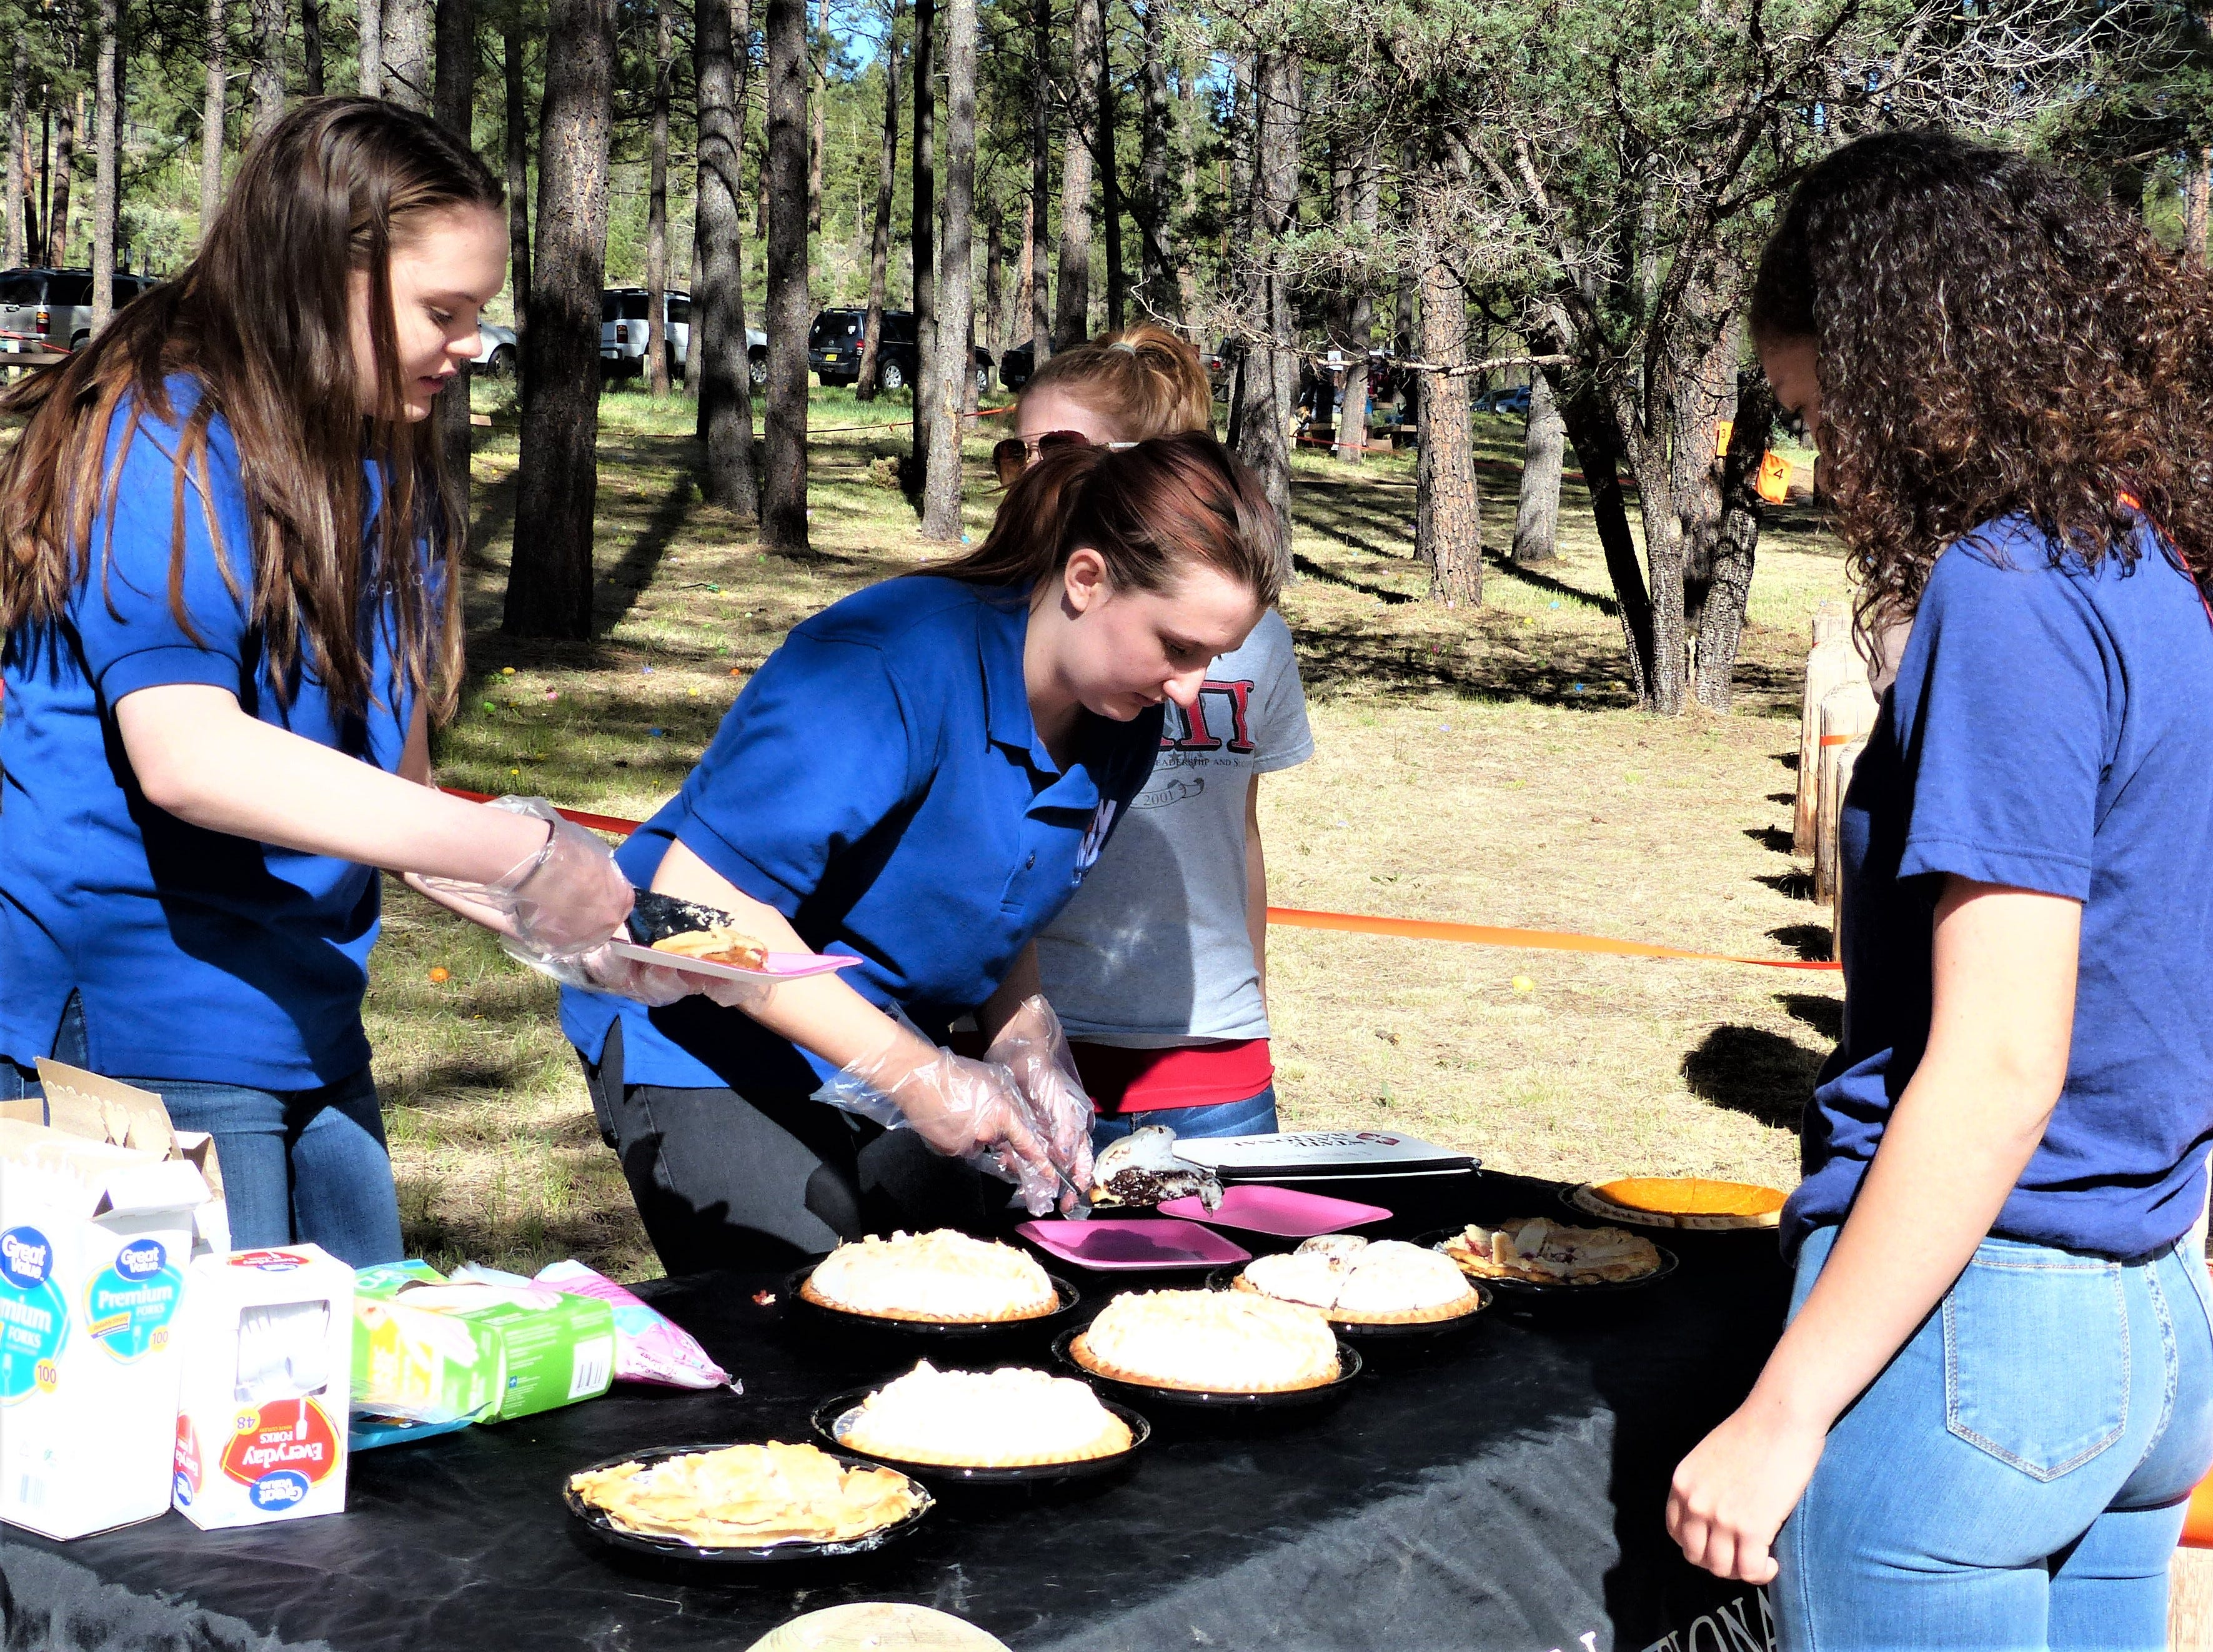 Members of the National Society of Leadership and Success cut big slices of pie and also raffled tickets to win a whole pie from Cornerstone Bakery to raise money for scholarships and other projects.